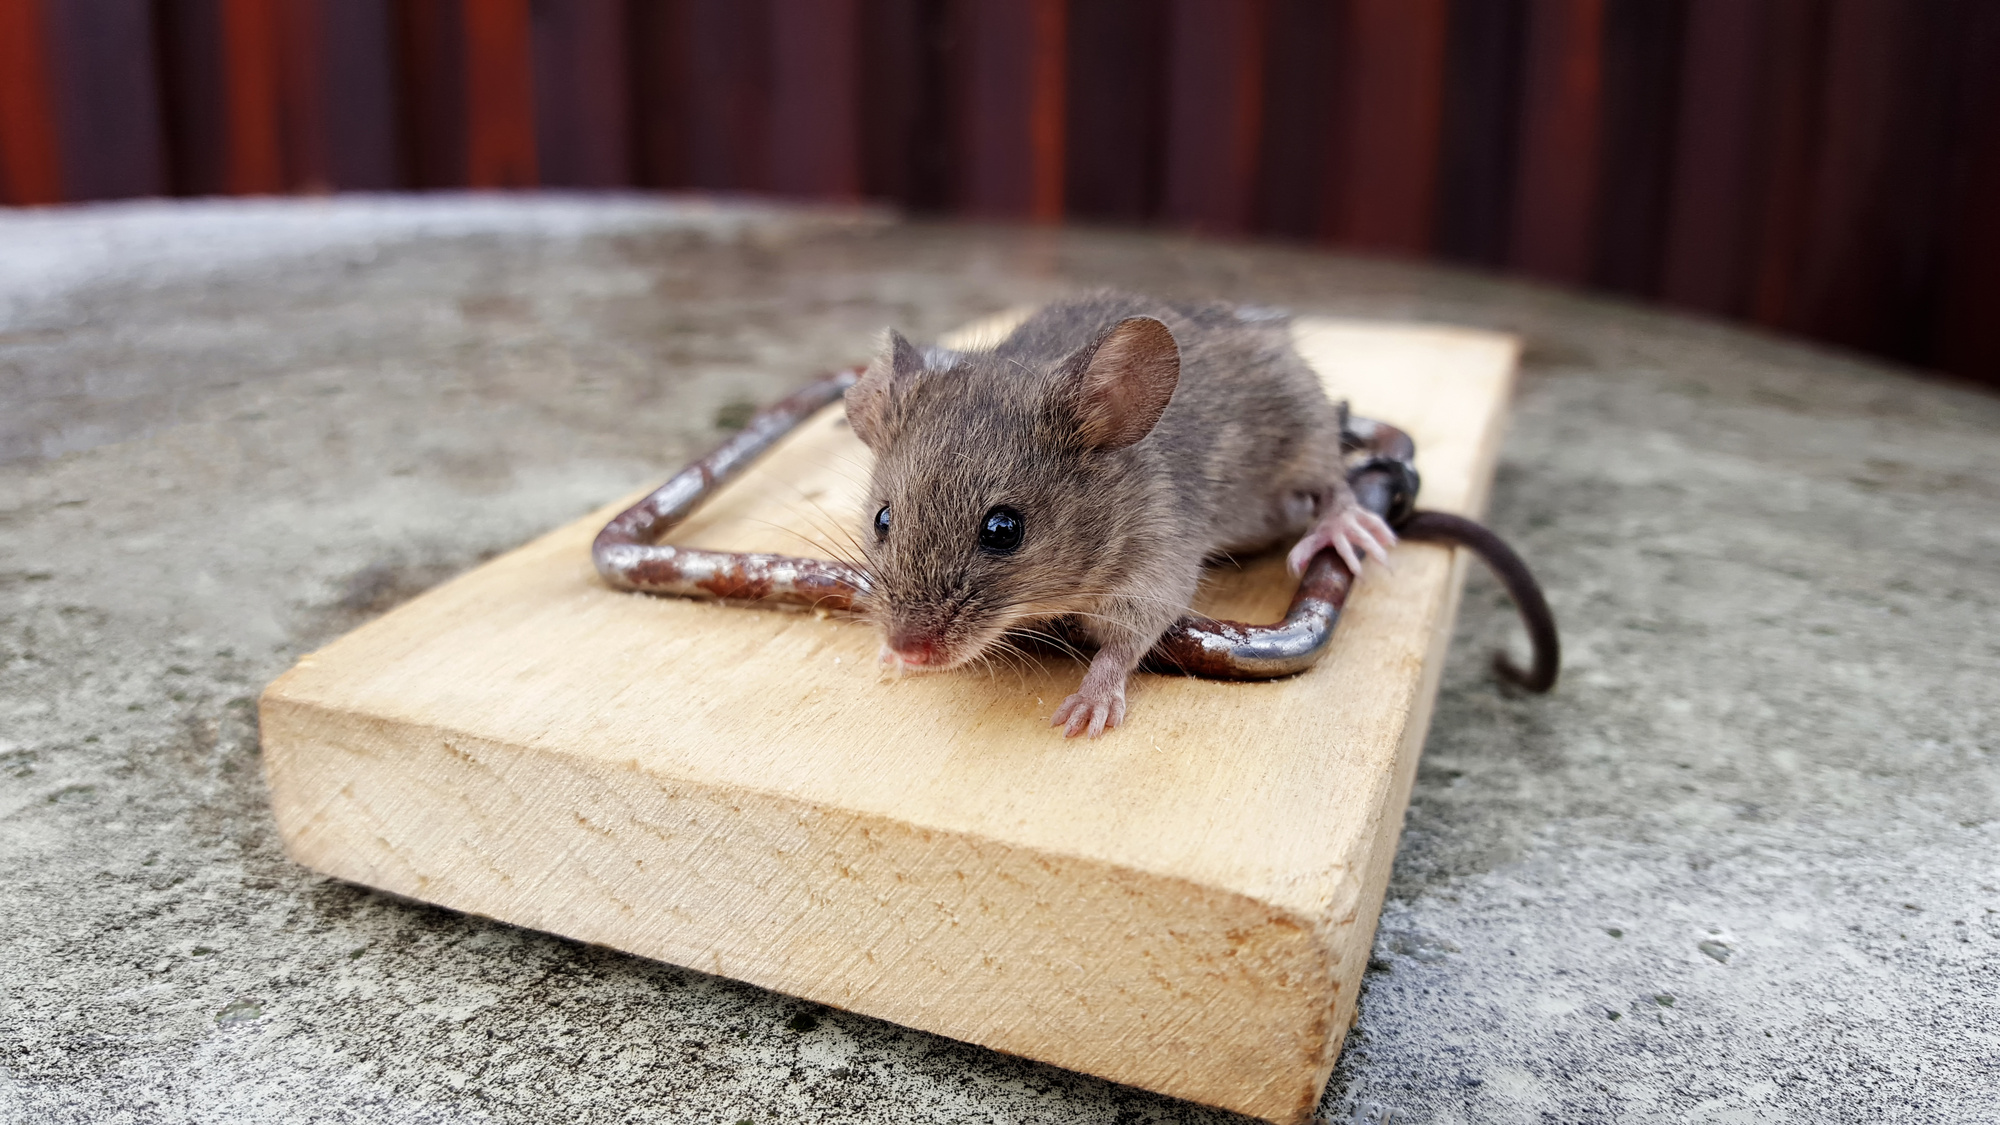 How To Get Rid Of Rats And Keep Them Away From Your Home